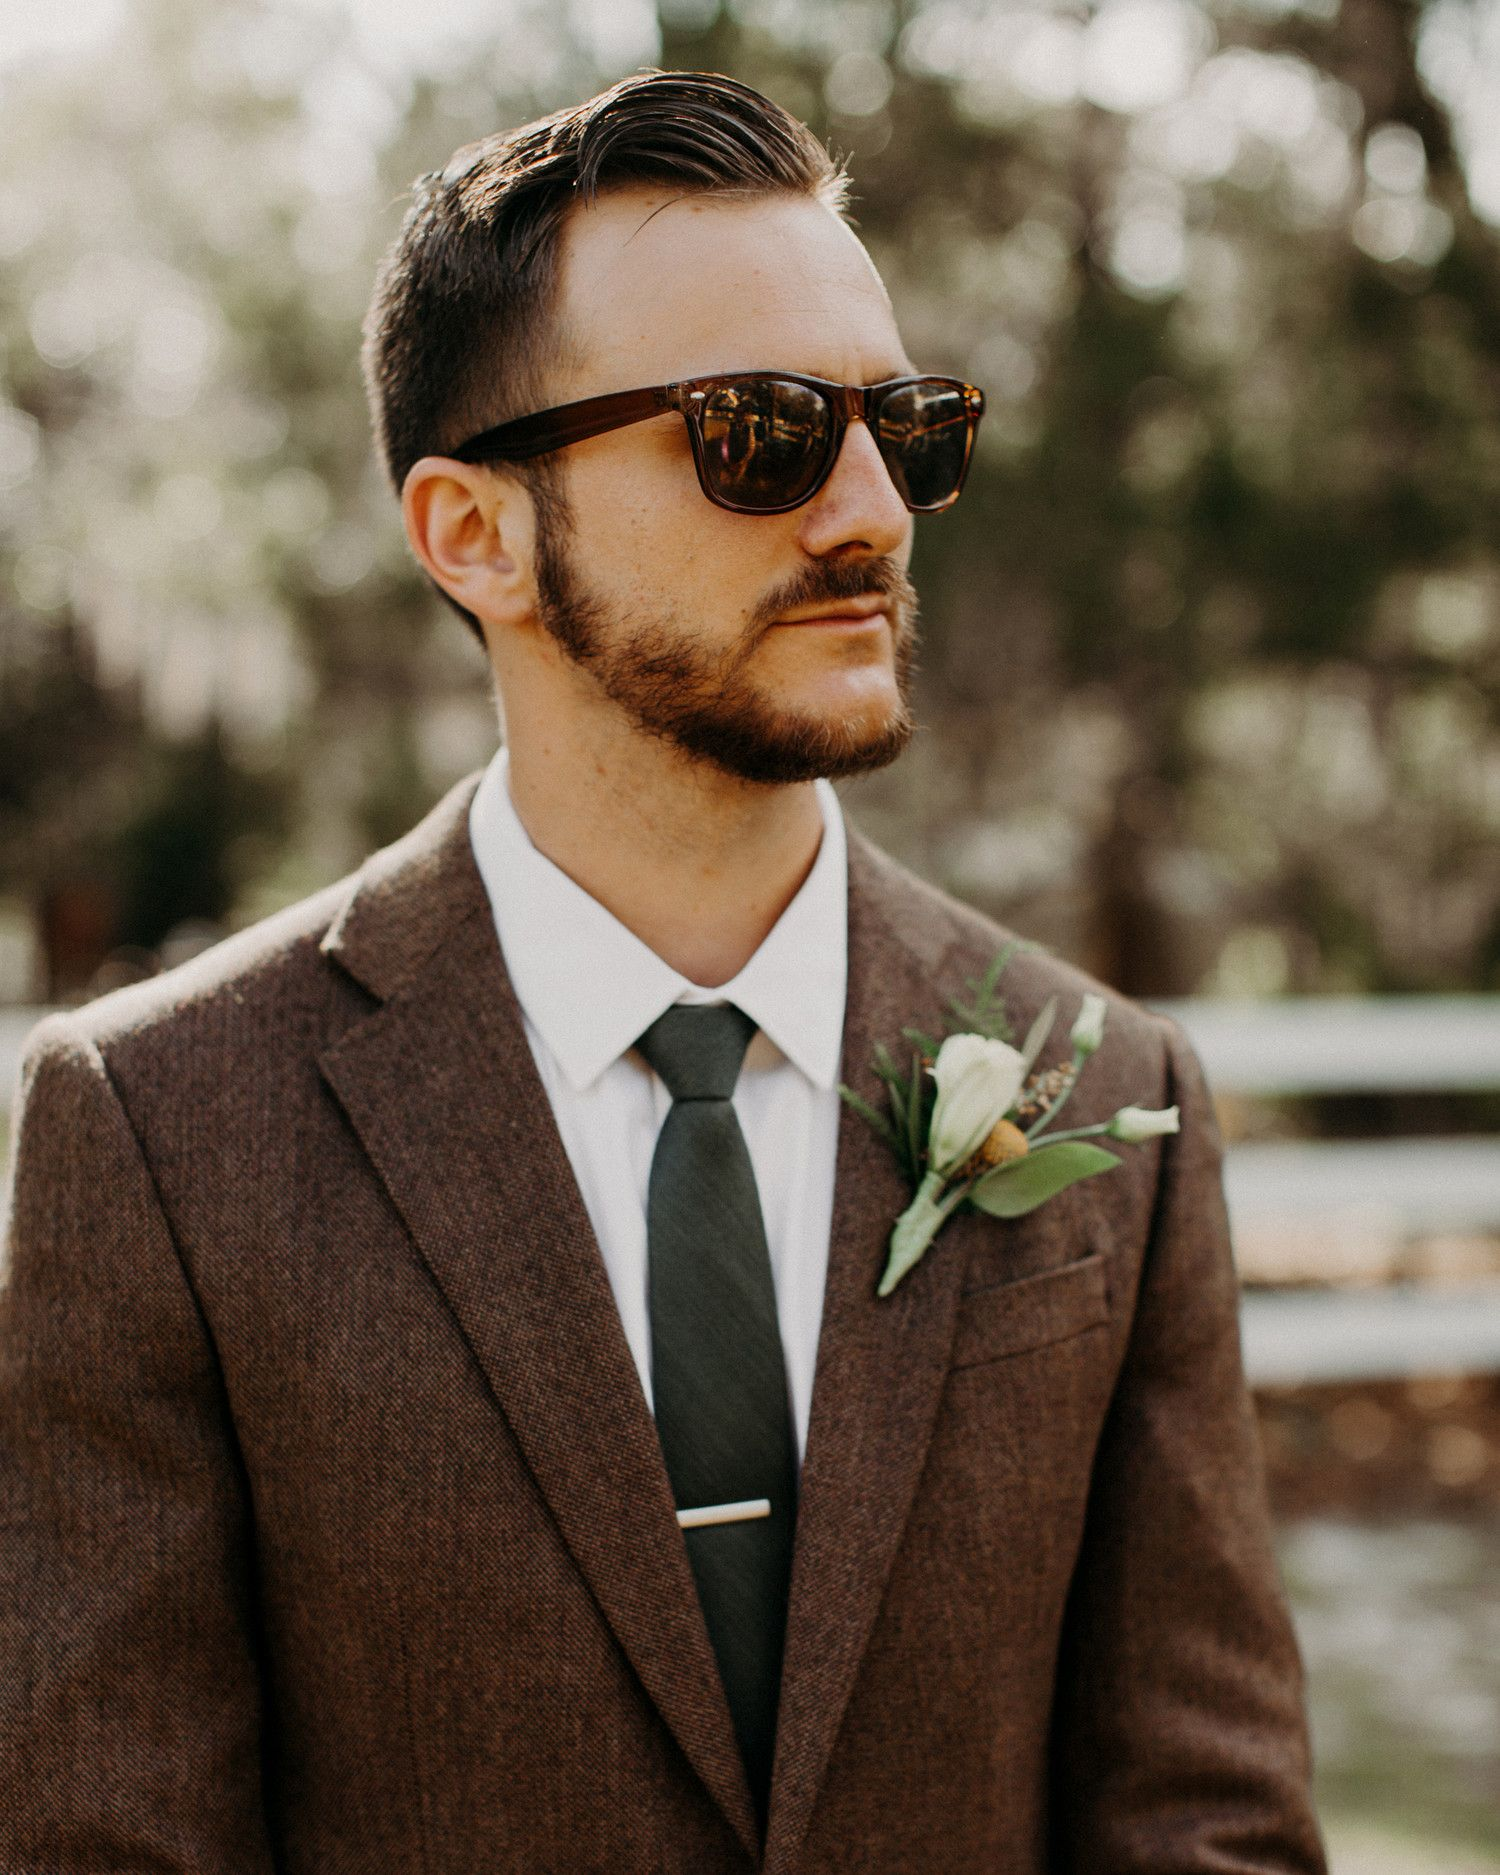 21 Grooms Who Wore Colorful Wedding Suits Brown Suit Wedding Wedding Suits Men Casual Grooms